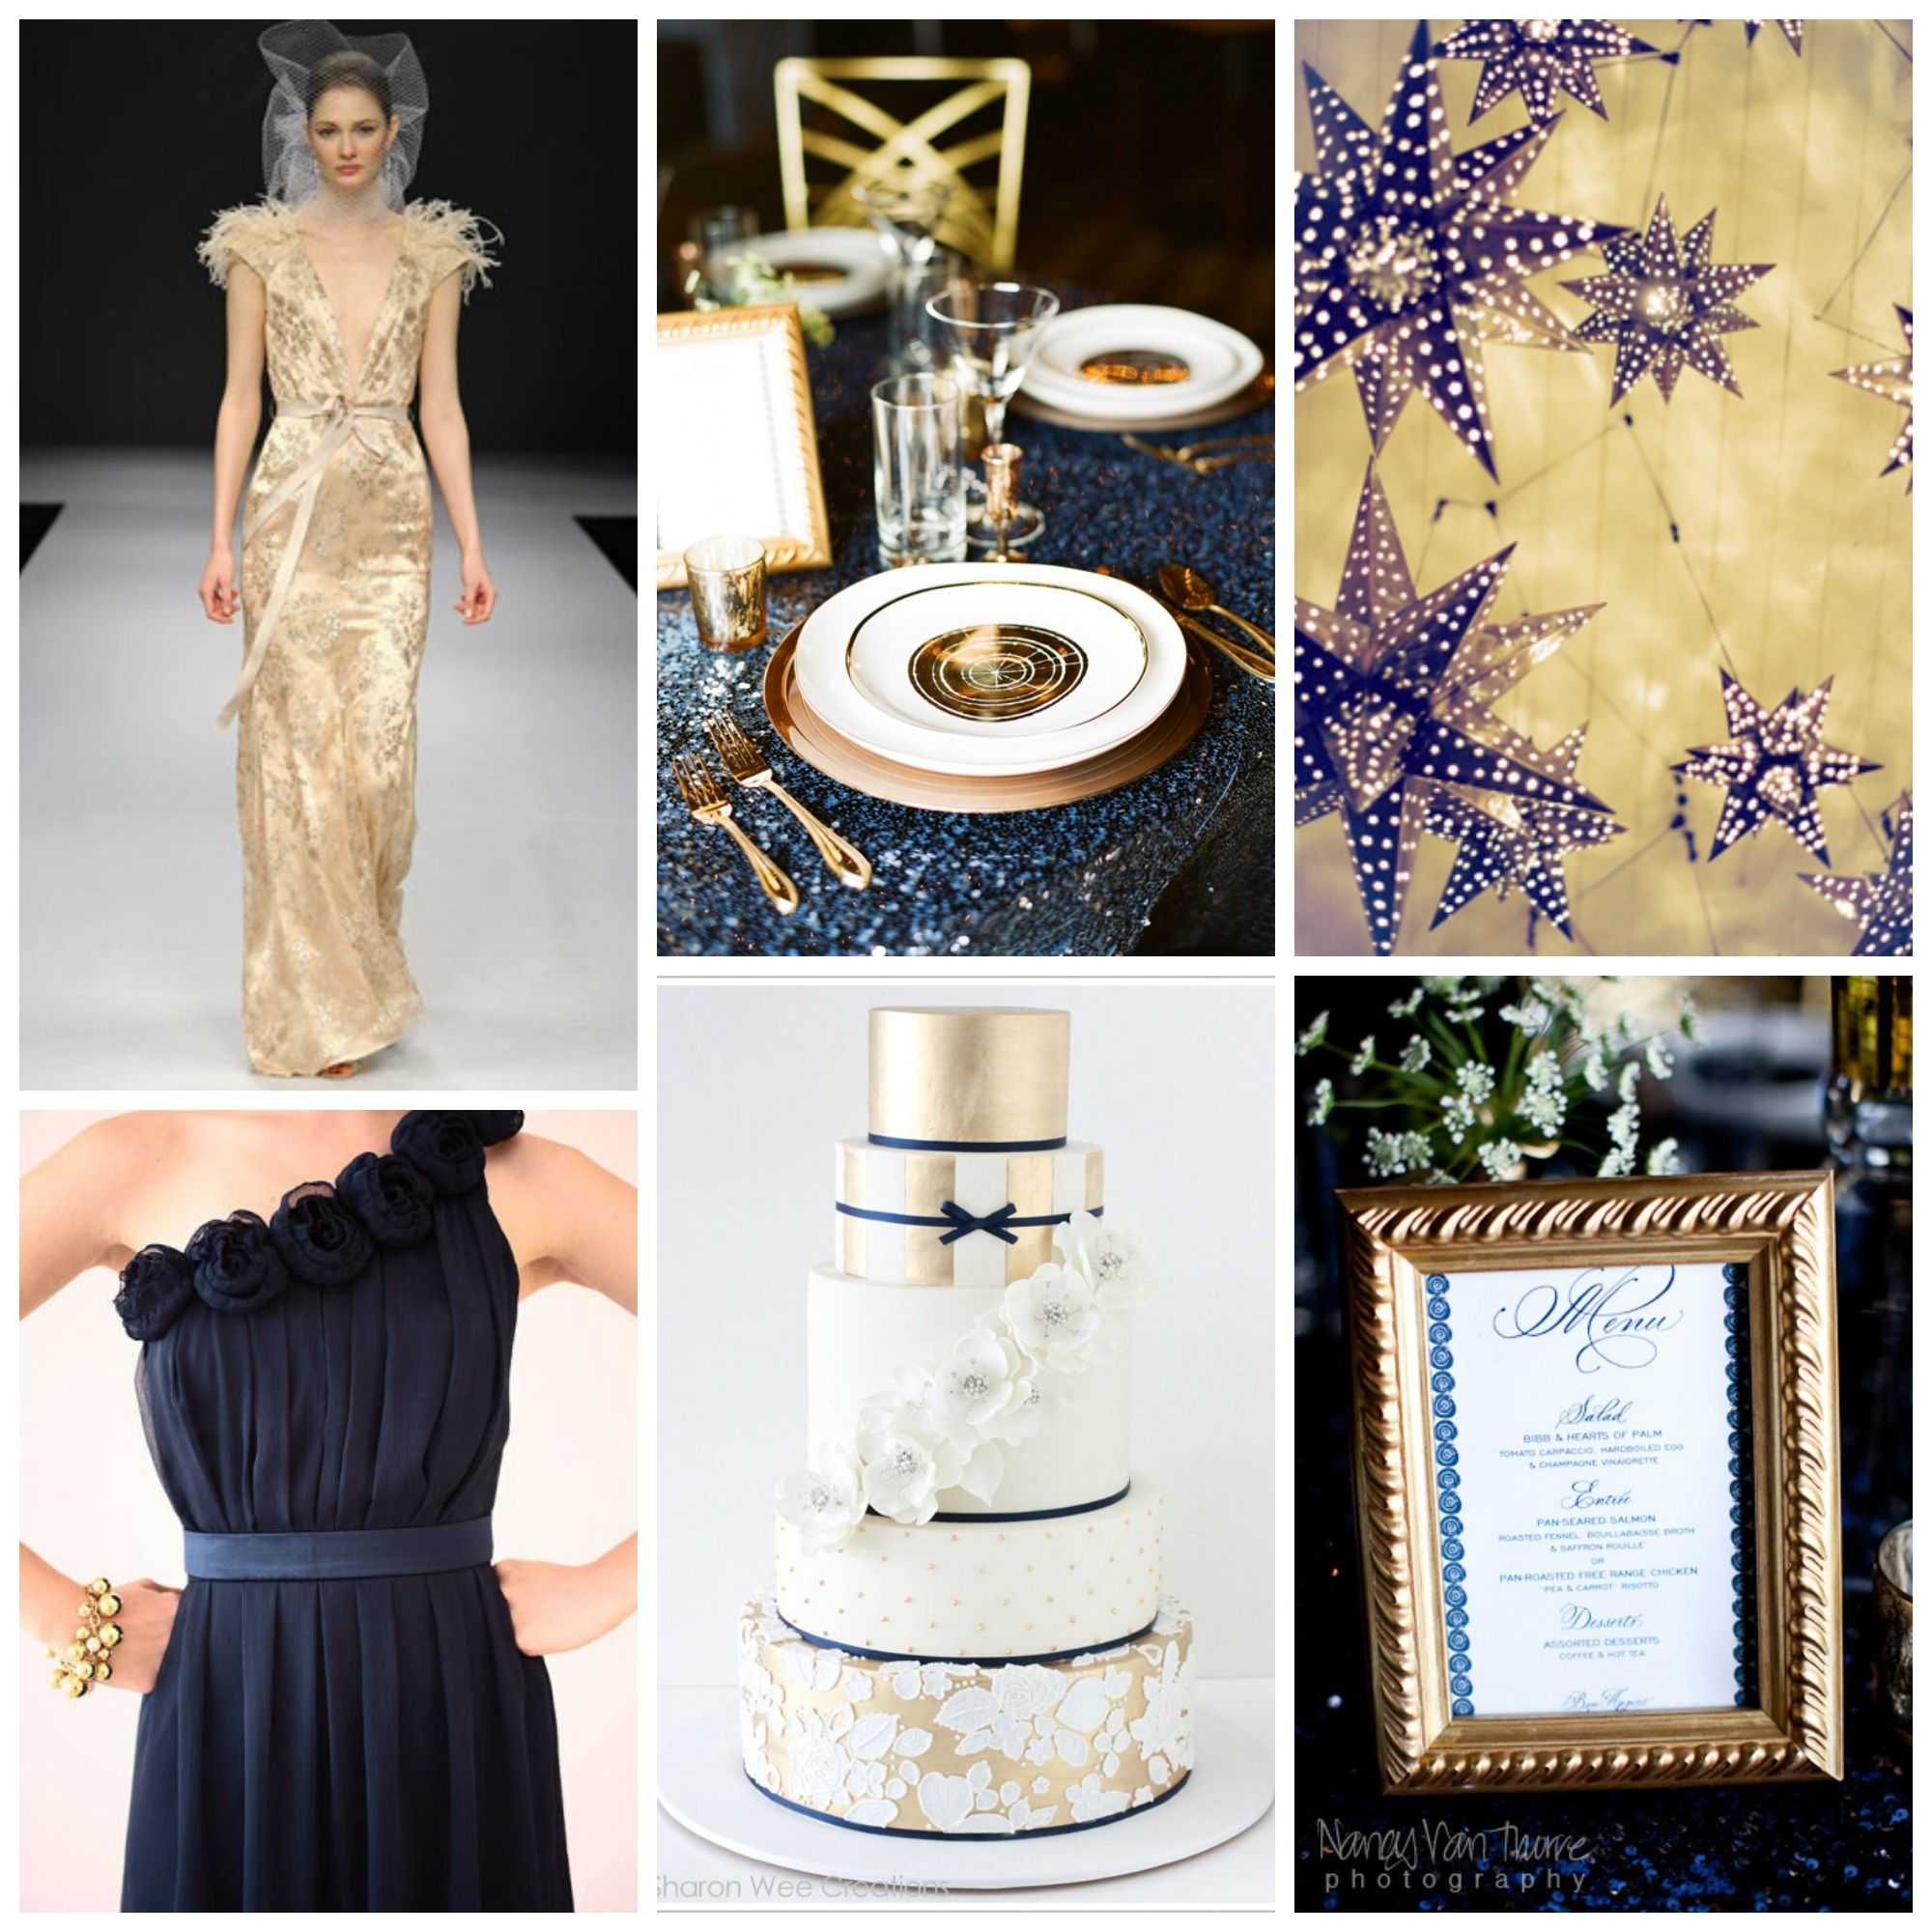 Gold And Navy Blue Together For Weddings // Omg I Love The Cake